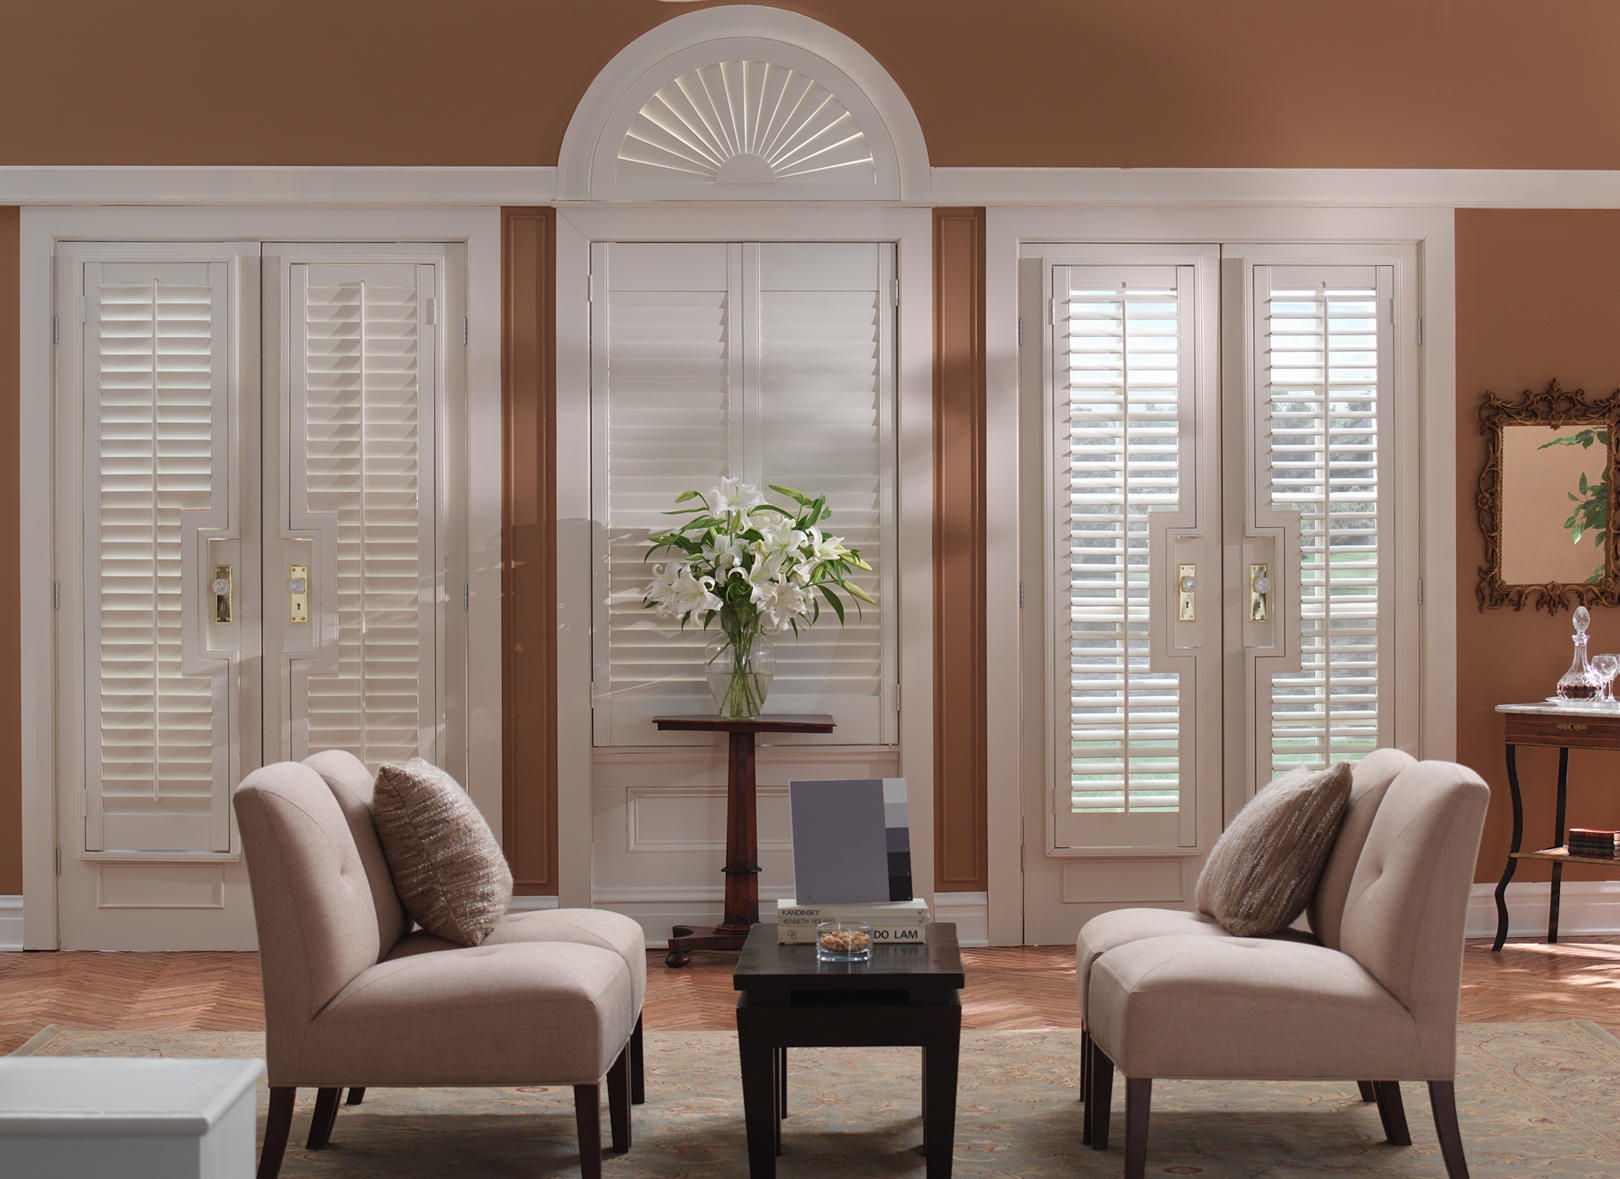 Bloomin' Blinds of South Palm Beaches image 3